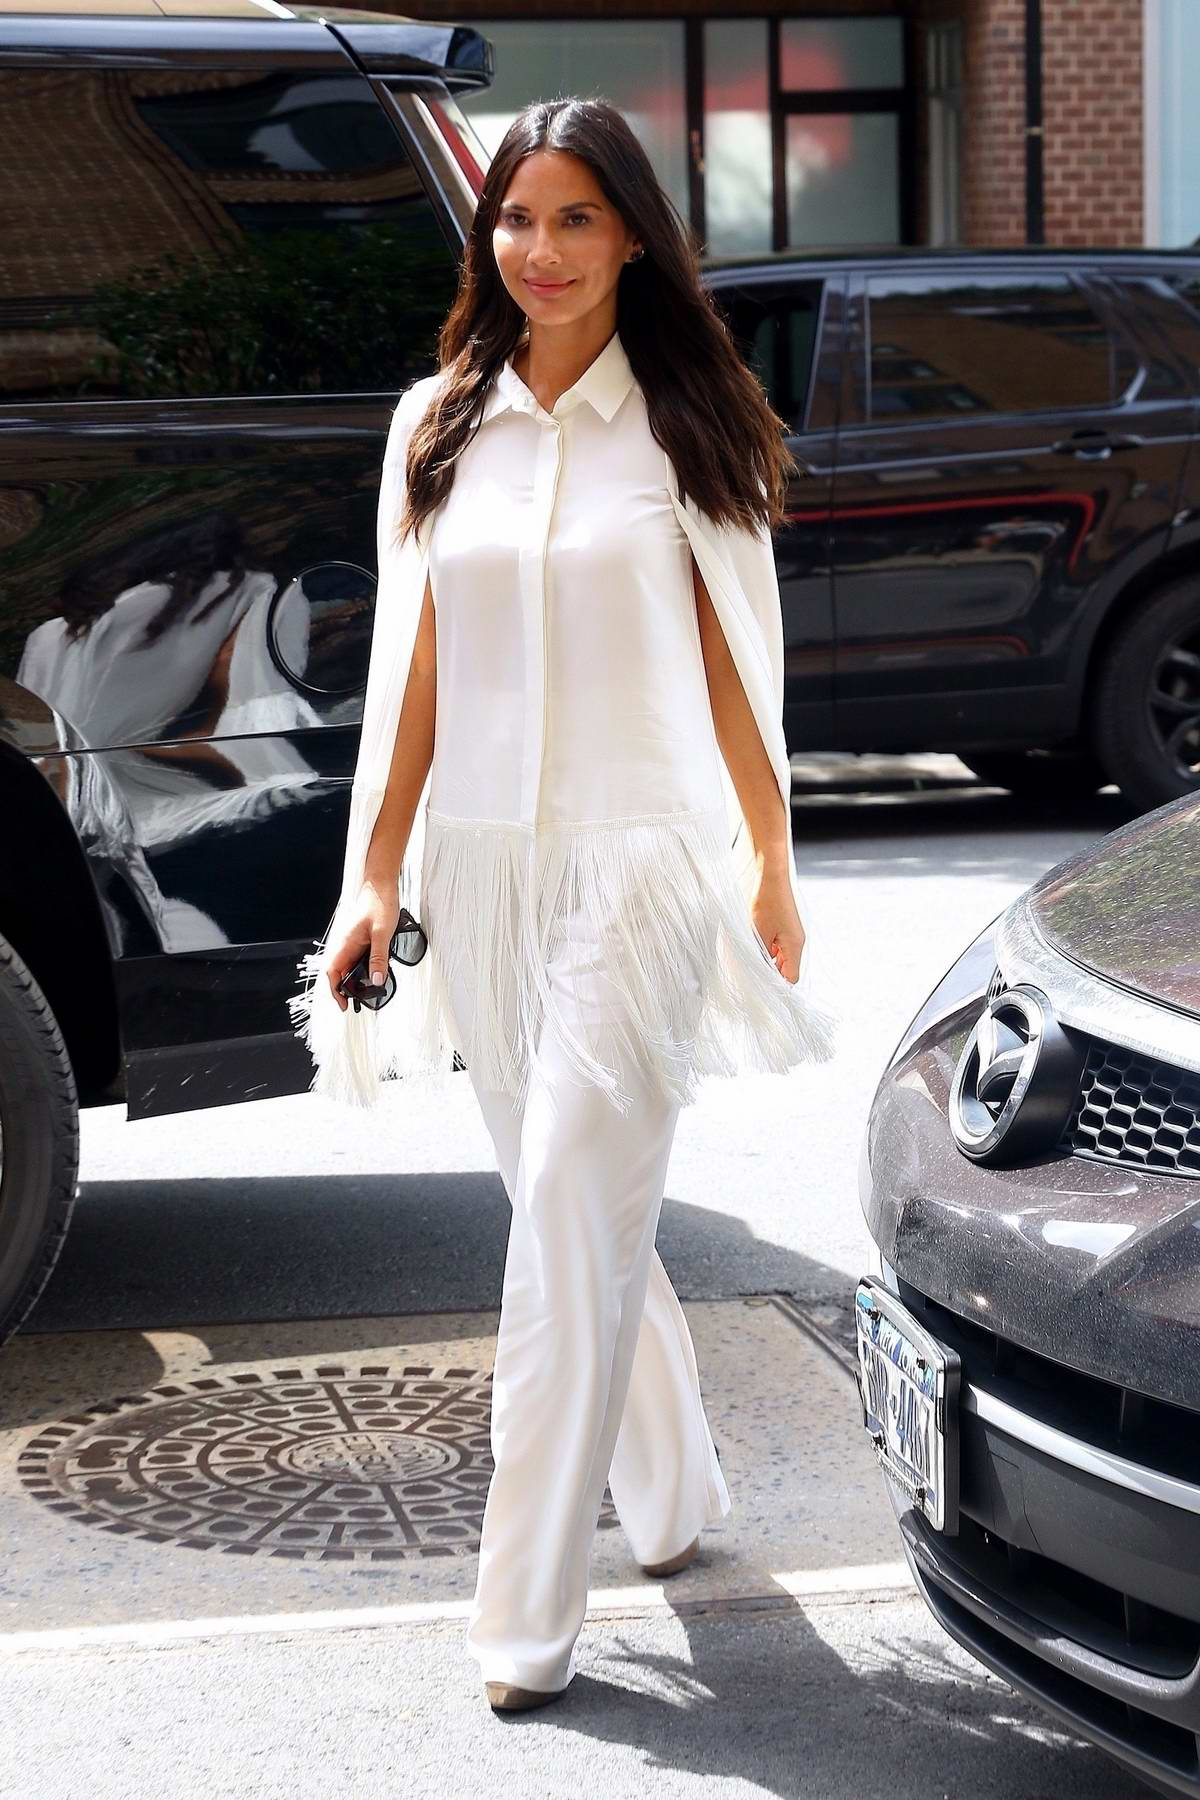 Olivia Munn is all smiles as she rocks an all-white ensemble while out in New York City